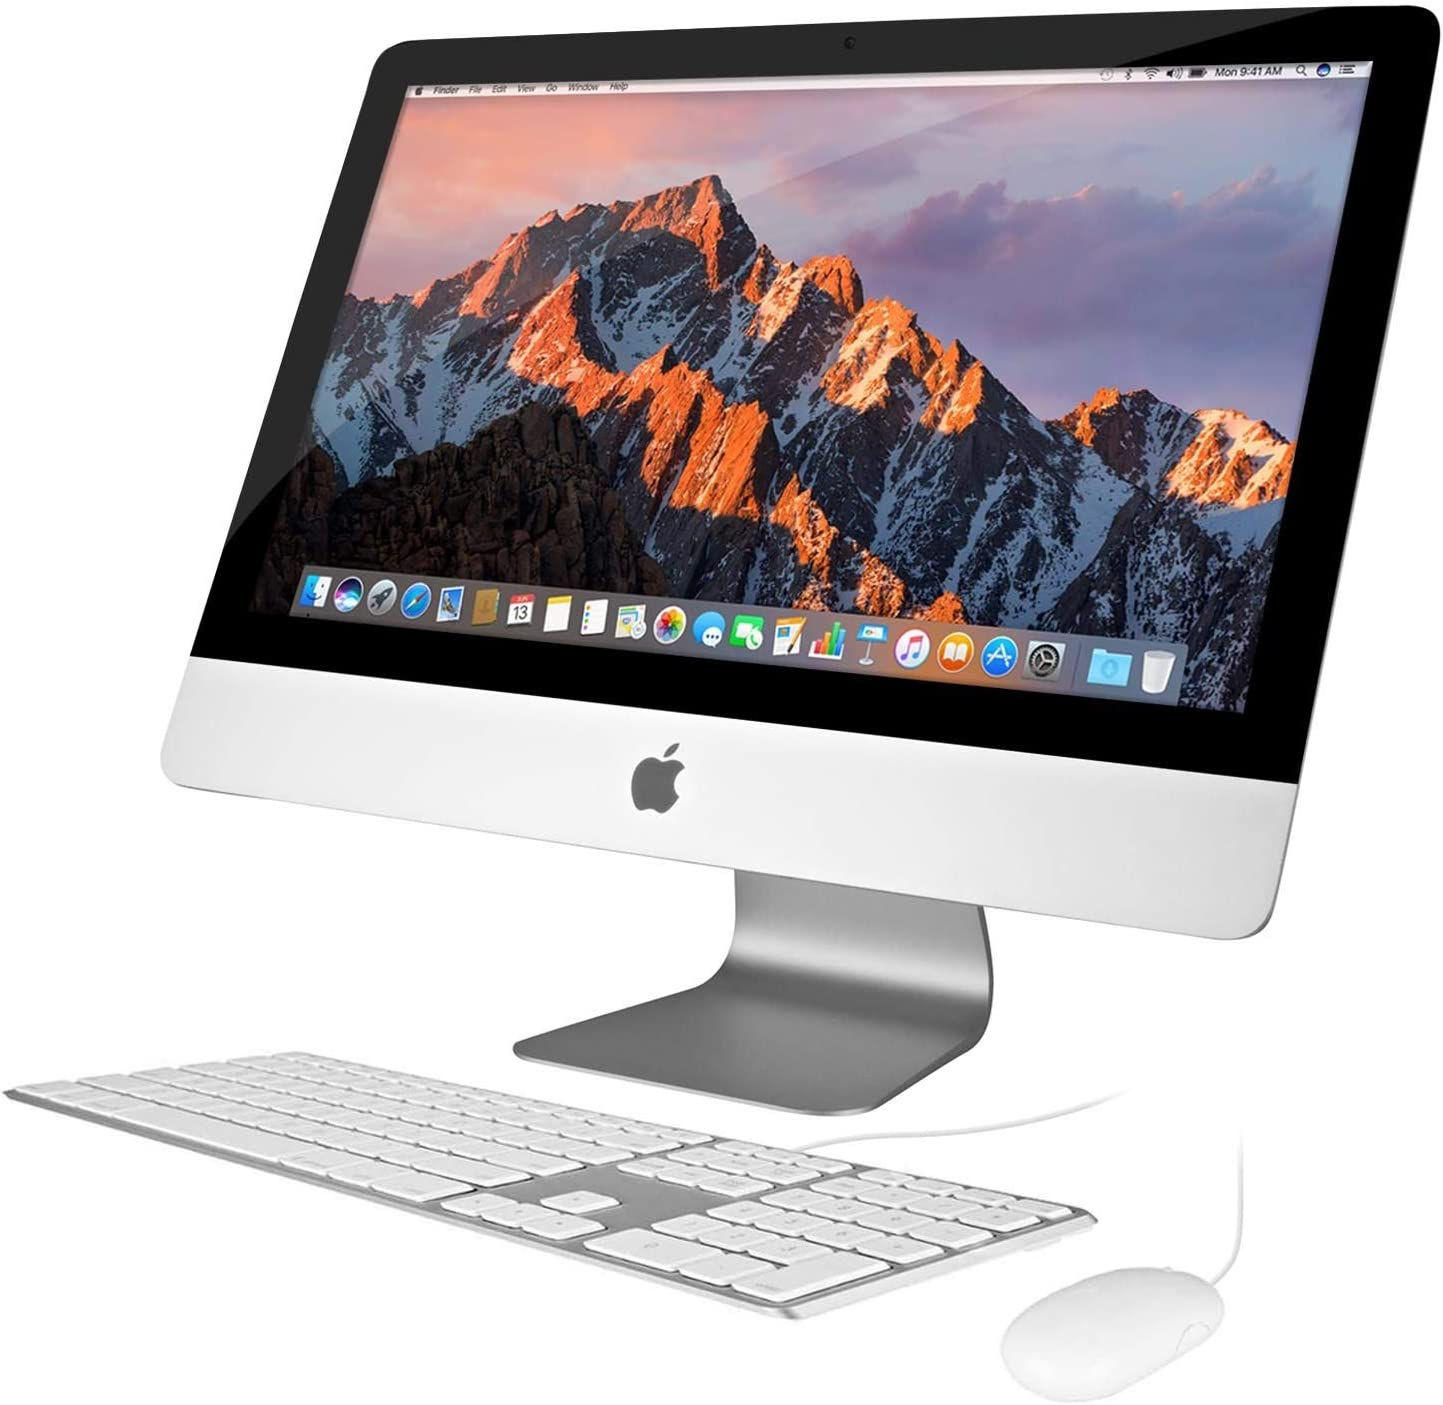 Apple iMac ME087LL/A 21.5-Inch Desktop - Intel Core i5 2.9GHz - 8GB RAM - 1TB Hard Drive (Renewed)